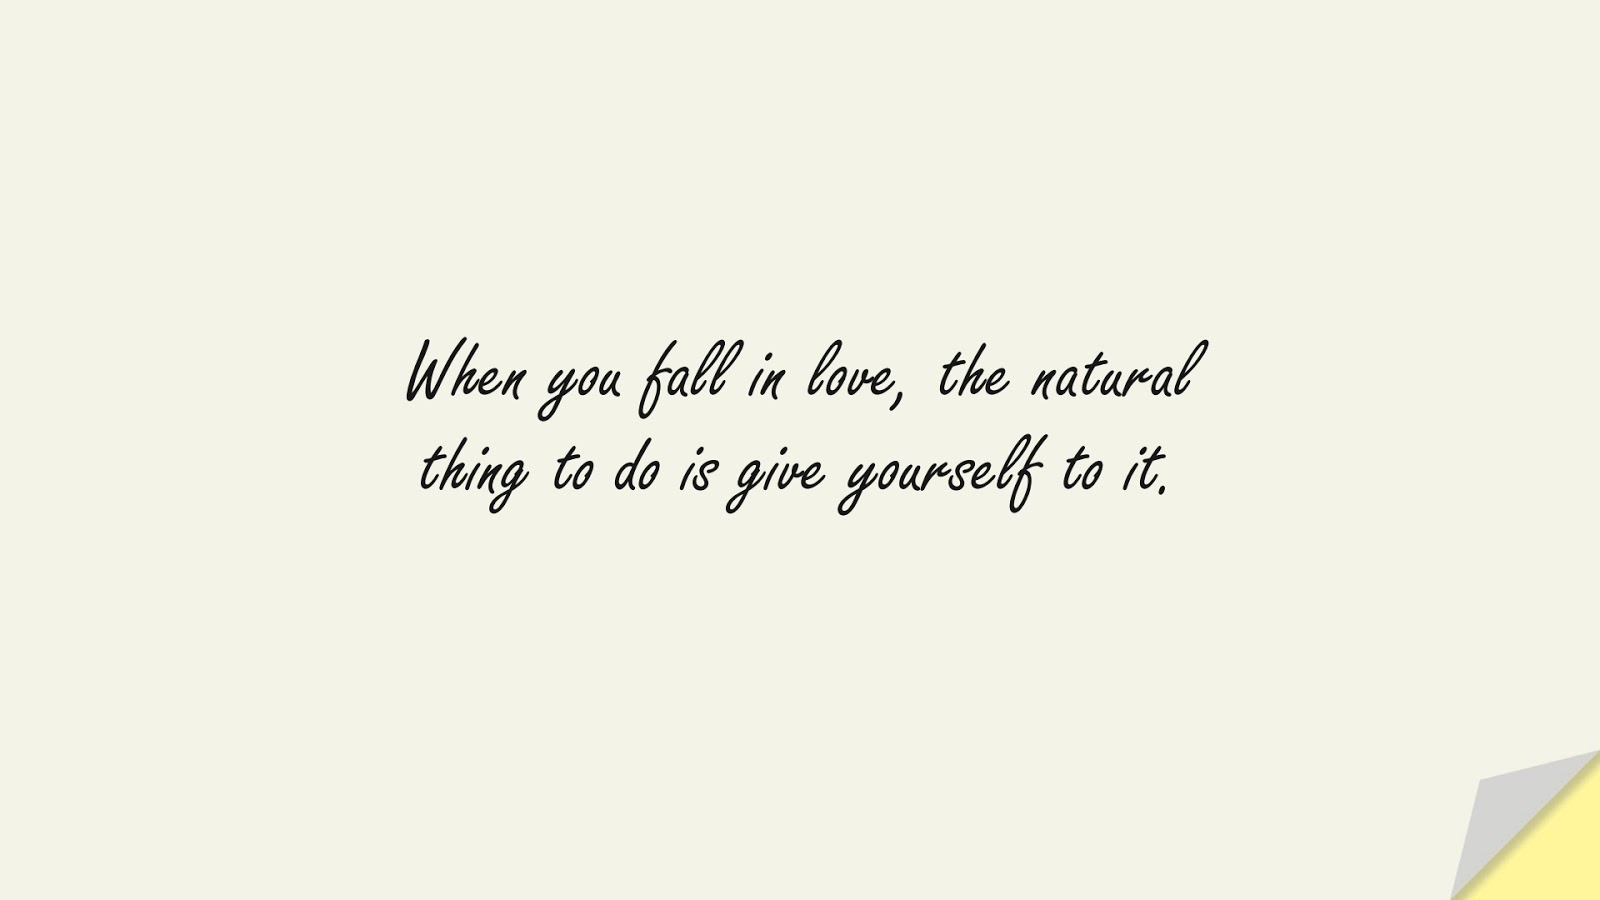 When you fall in love, the natural thing to do is give yourself to it.FALSE